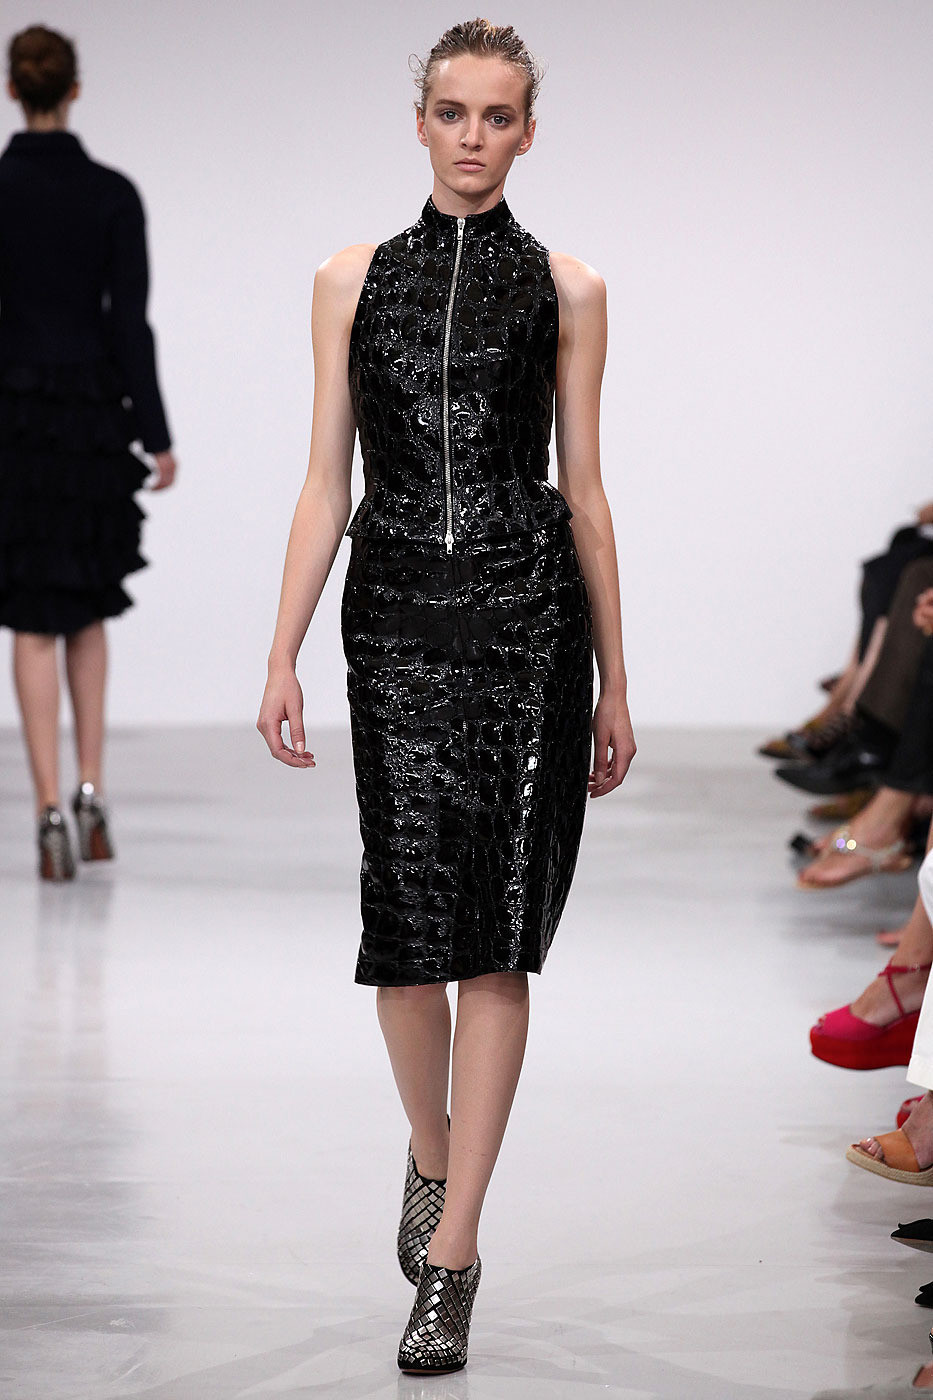 Azzedine ala a at couture fall 2011 livingly for Designer alaia azzedine